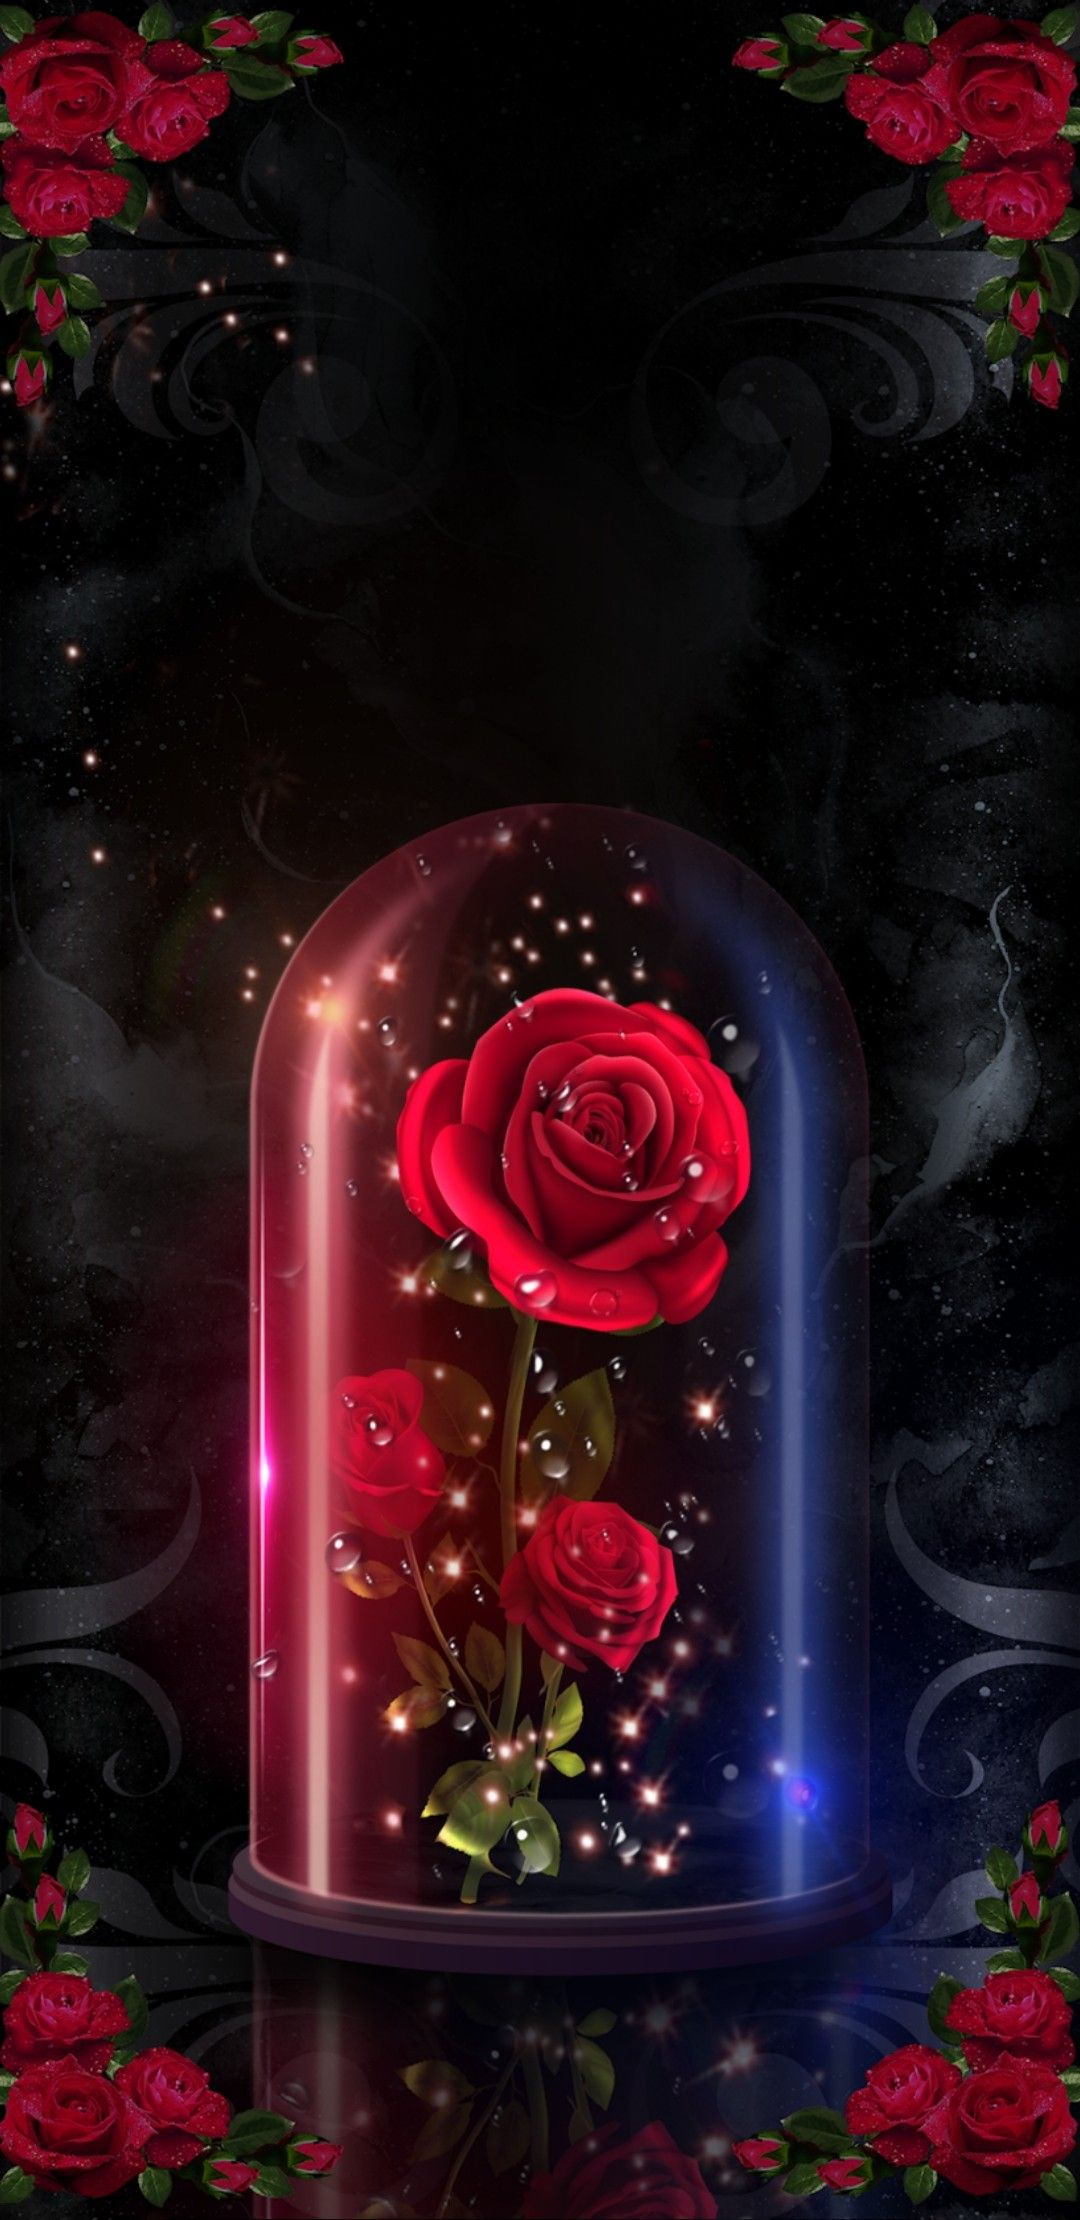 Pin By Emi Rey Siguenza On Roses Wallpaper 2 Rose Flower Wallpaper Flower Phone Wallpaper Flower Wallpaper Enchanted rose wallpaper beauty and